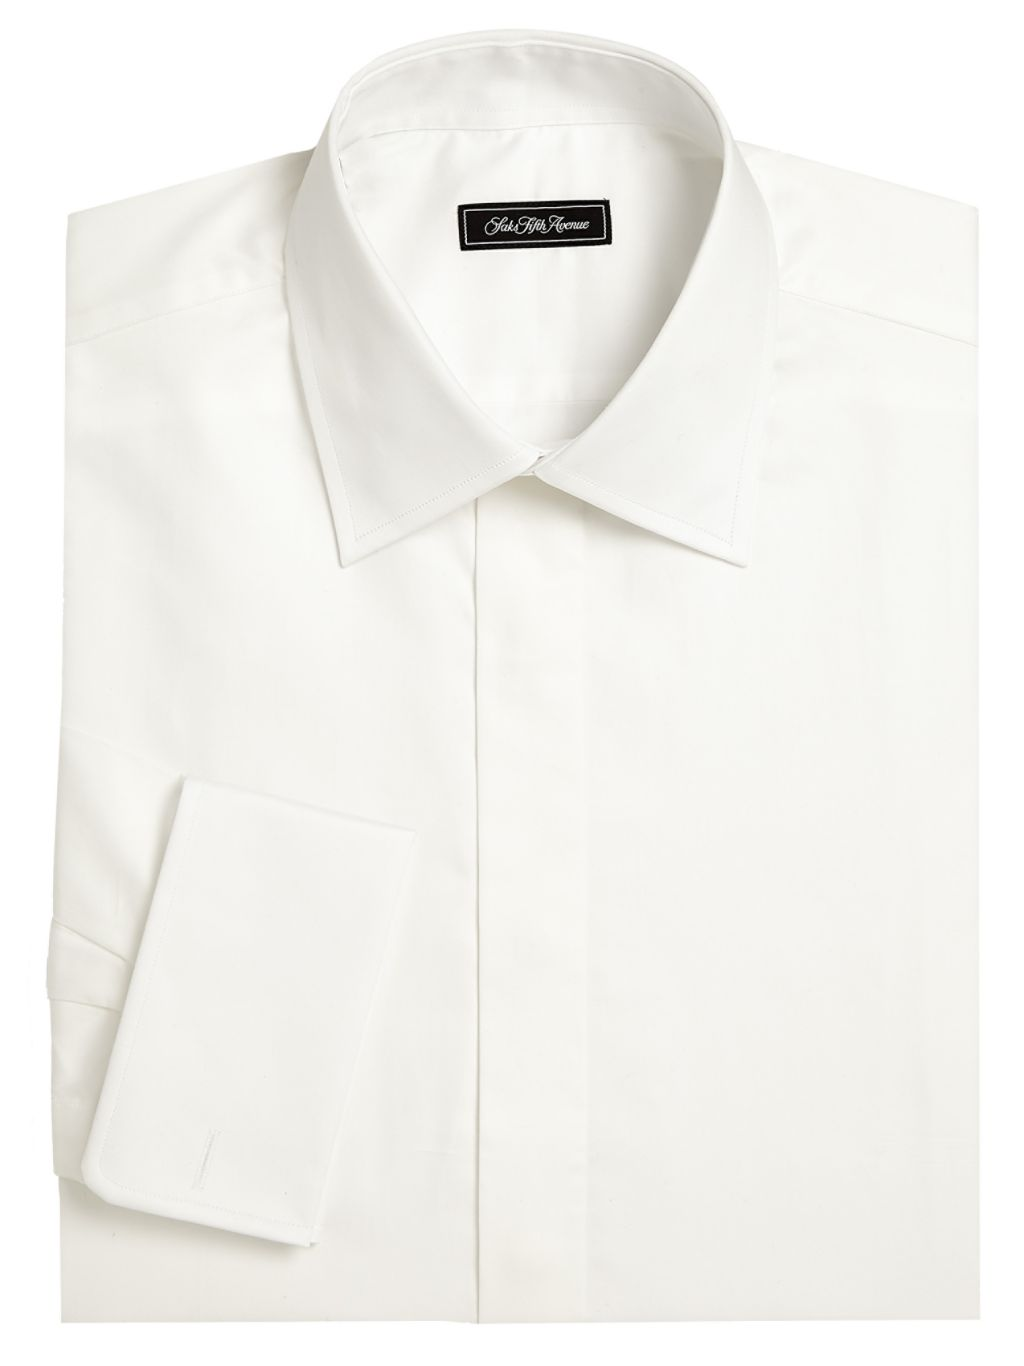 Saks Fifth Avenue COLLECTION Classic Fit Tuxedo Shirt